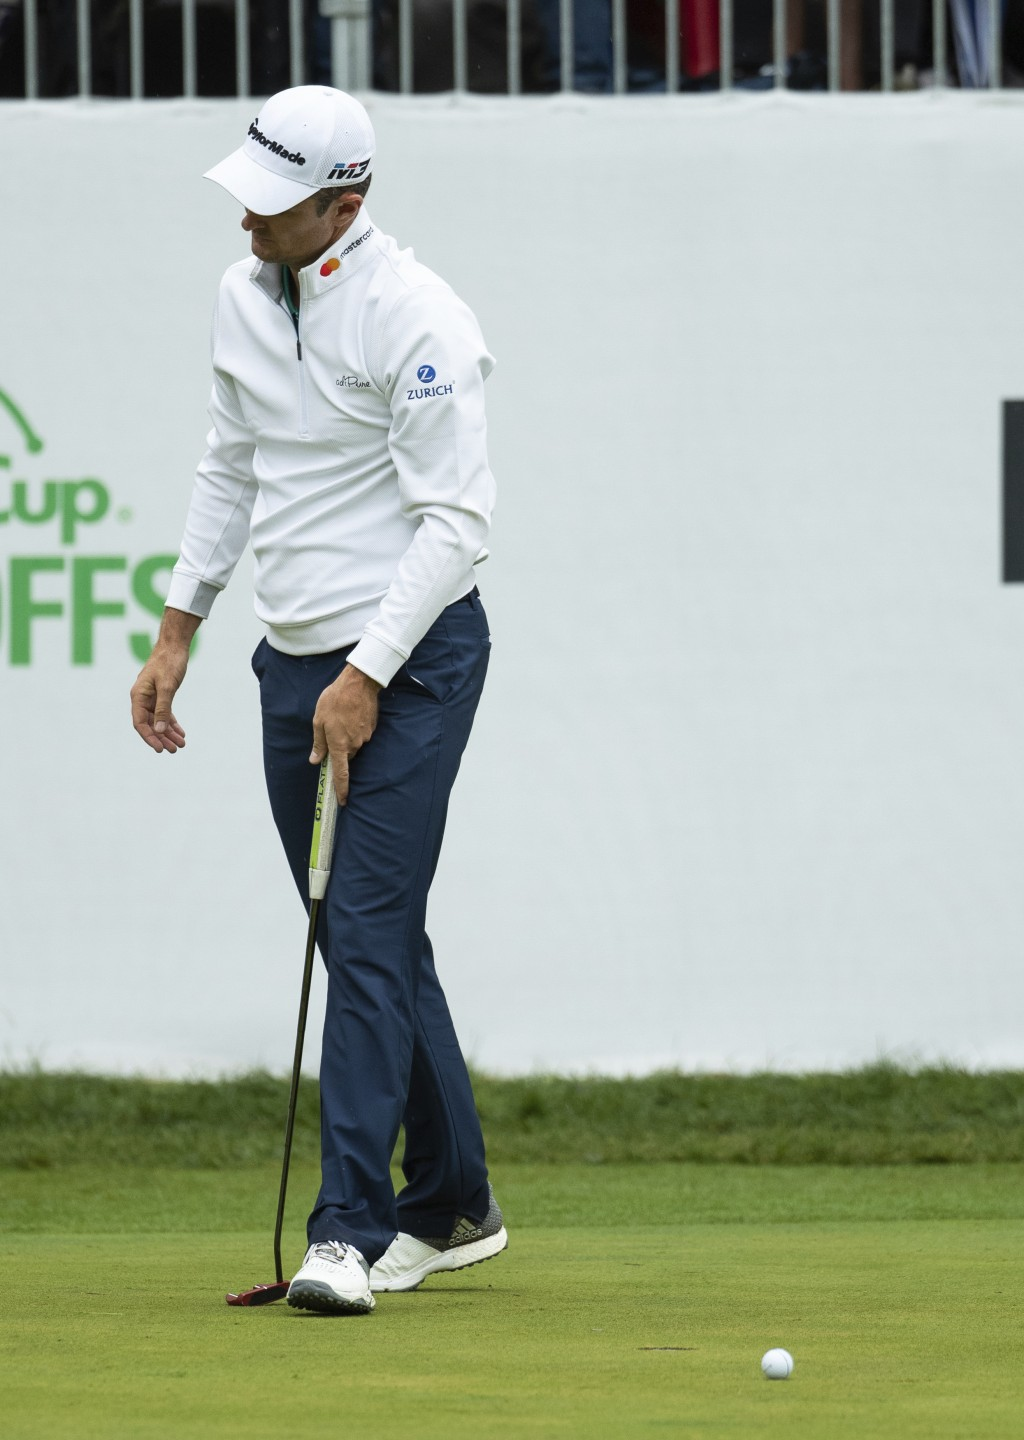 Justin Rose, of England, reacts to missing a putt for par in the playoff hole during the BMW Championship golf tournament at the Aronimink Golf Club,